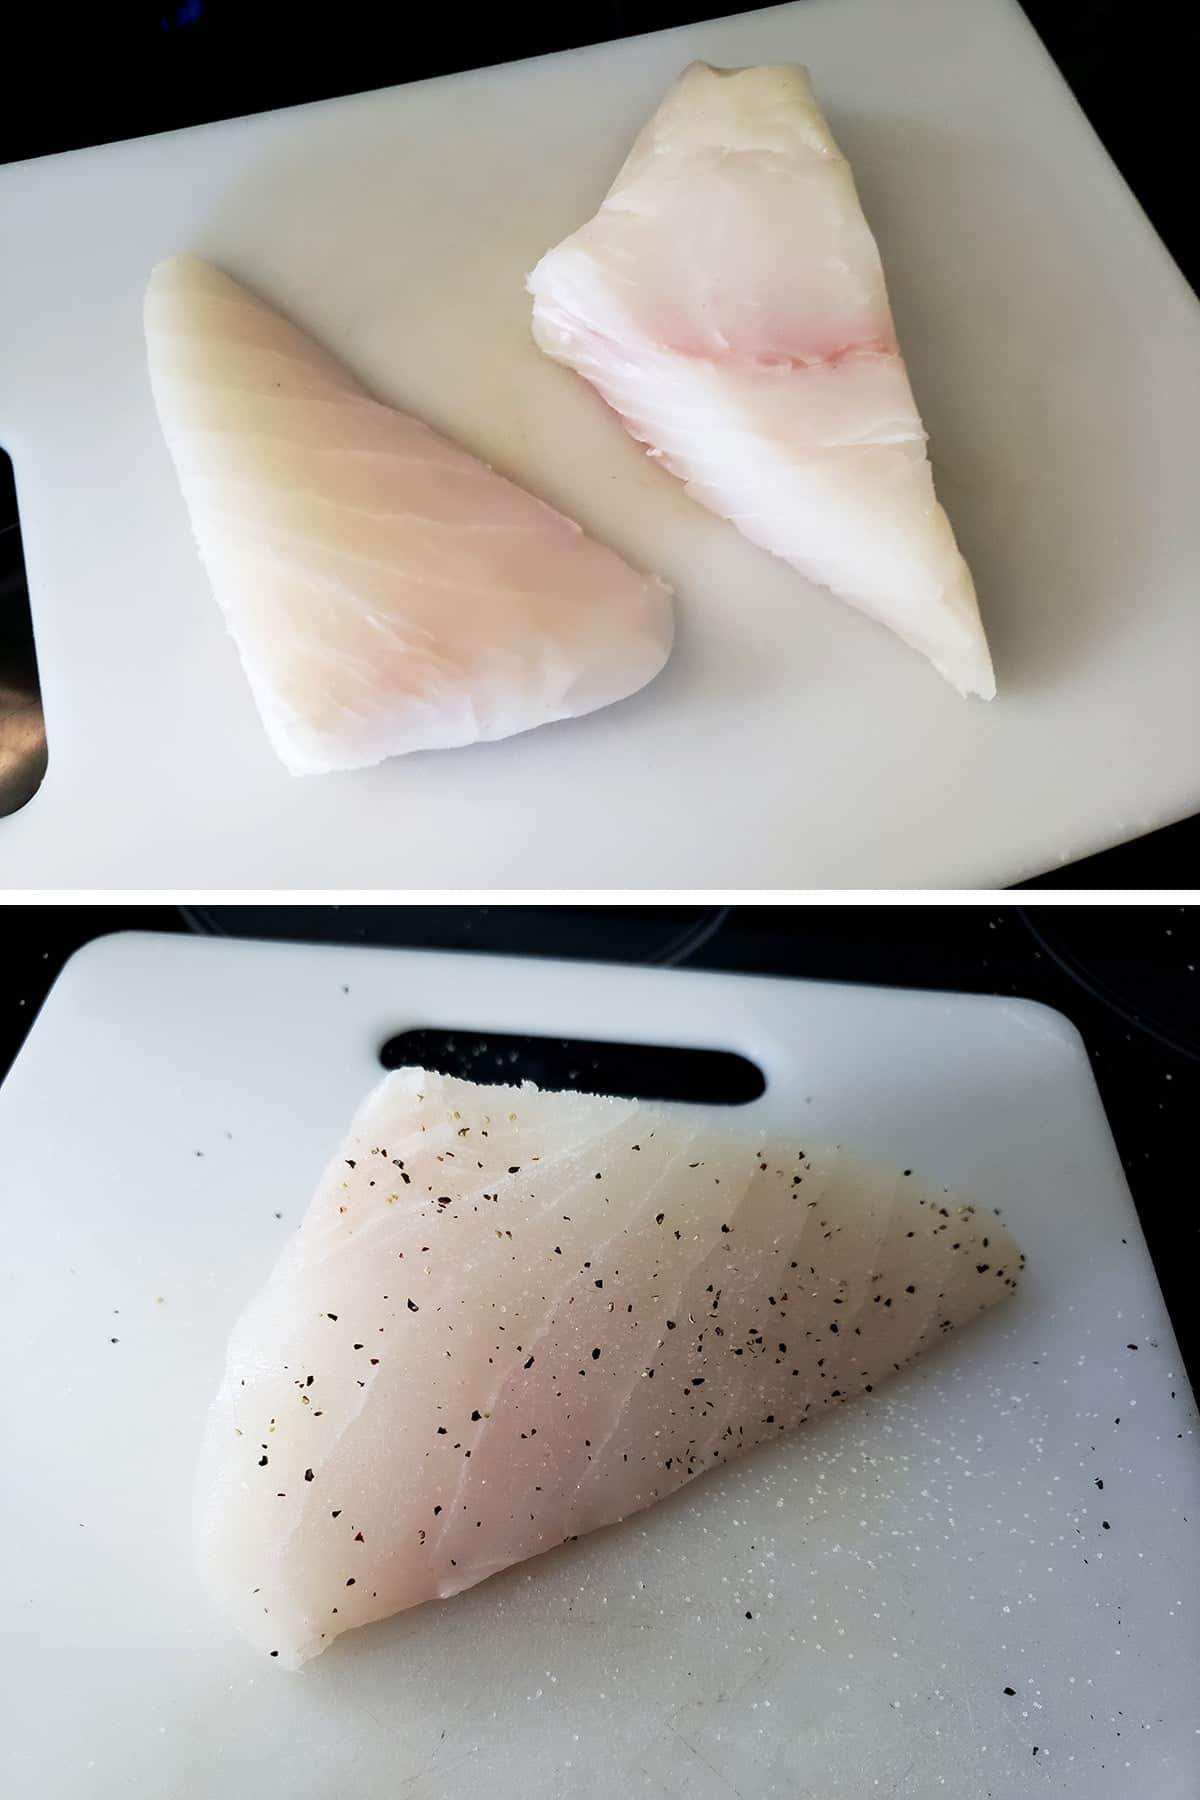 A two part image showing two pieces of halibut on a cutting board, then being seasoned with salt and pepper.